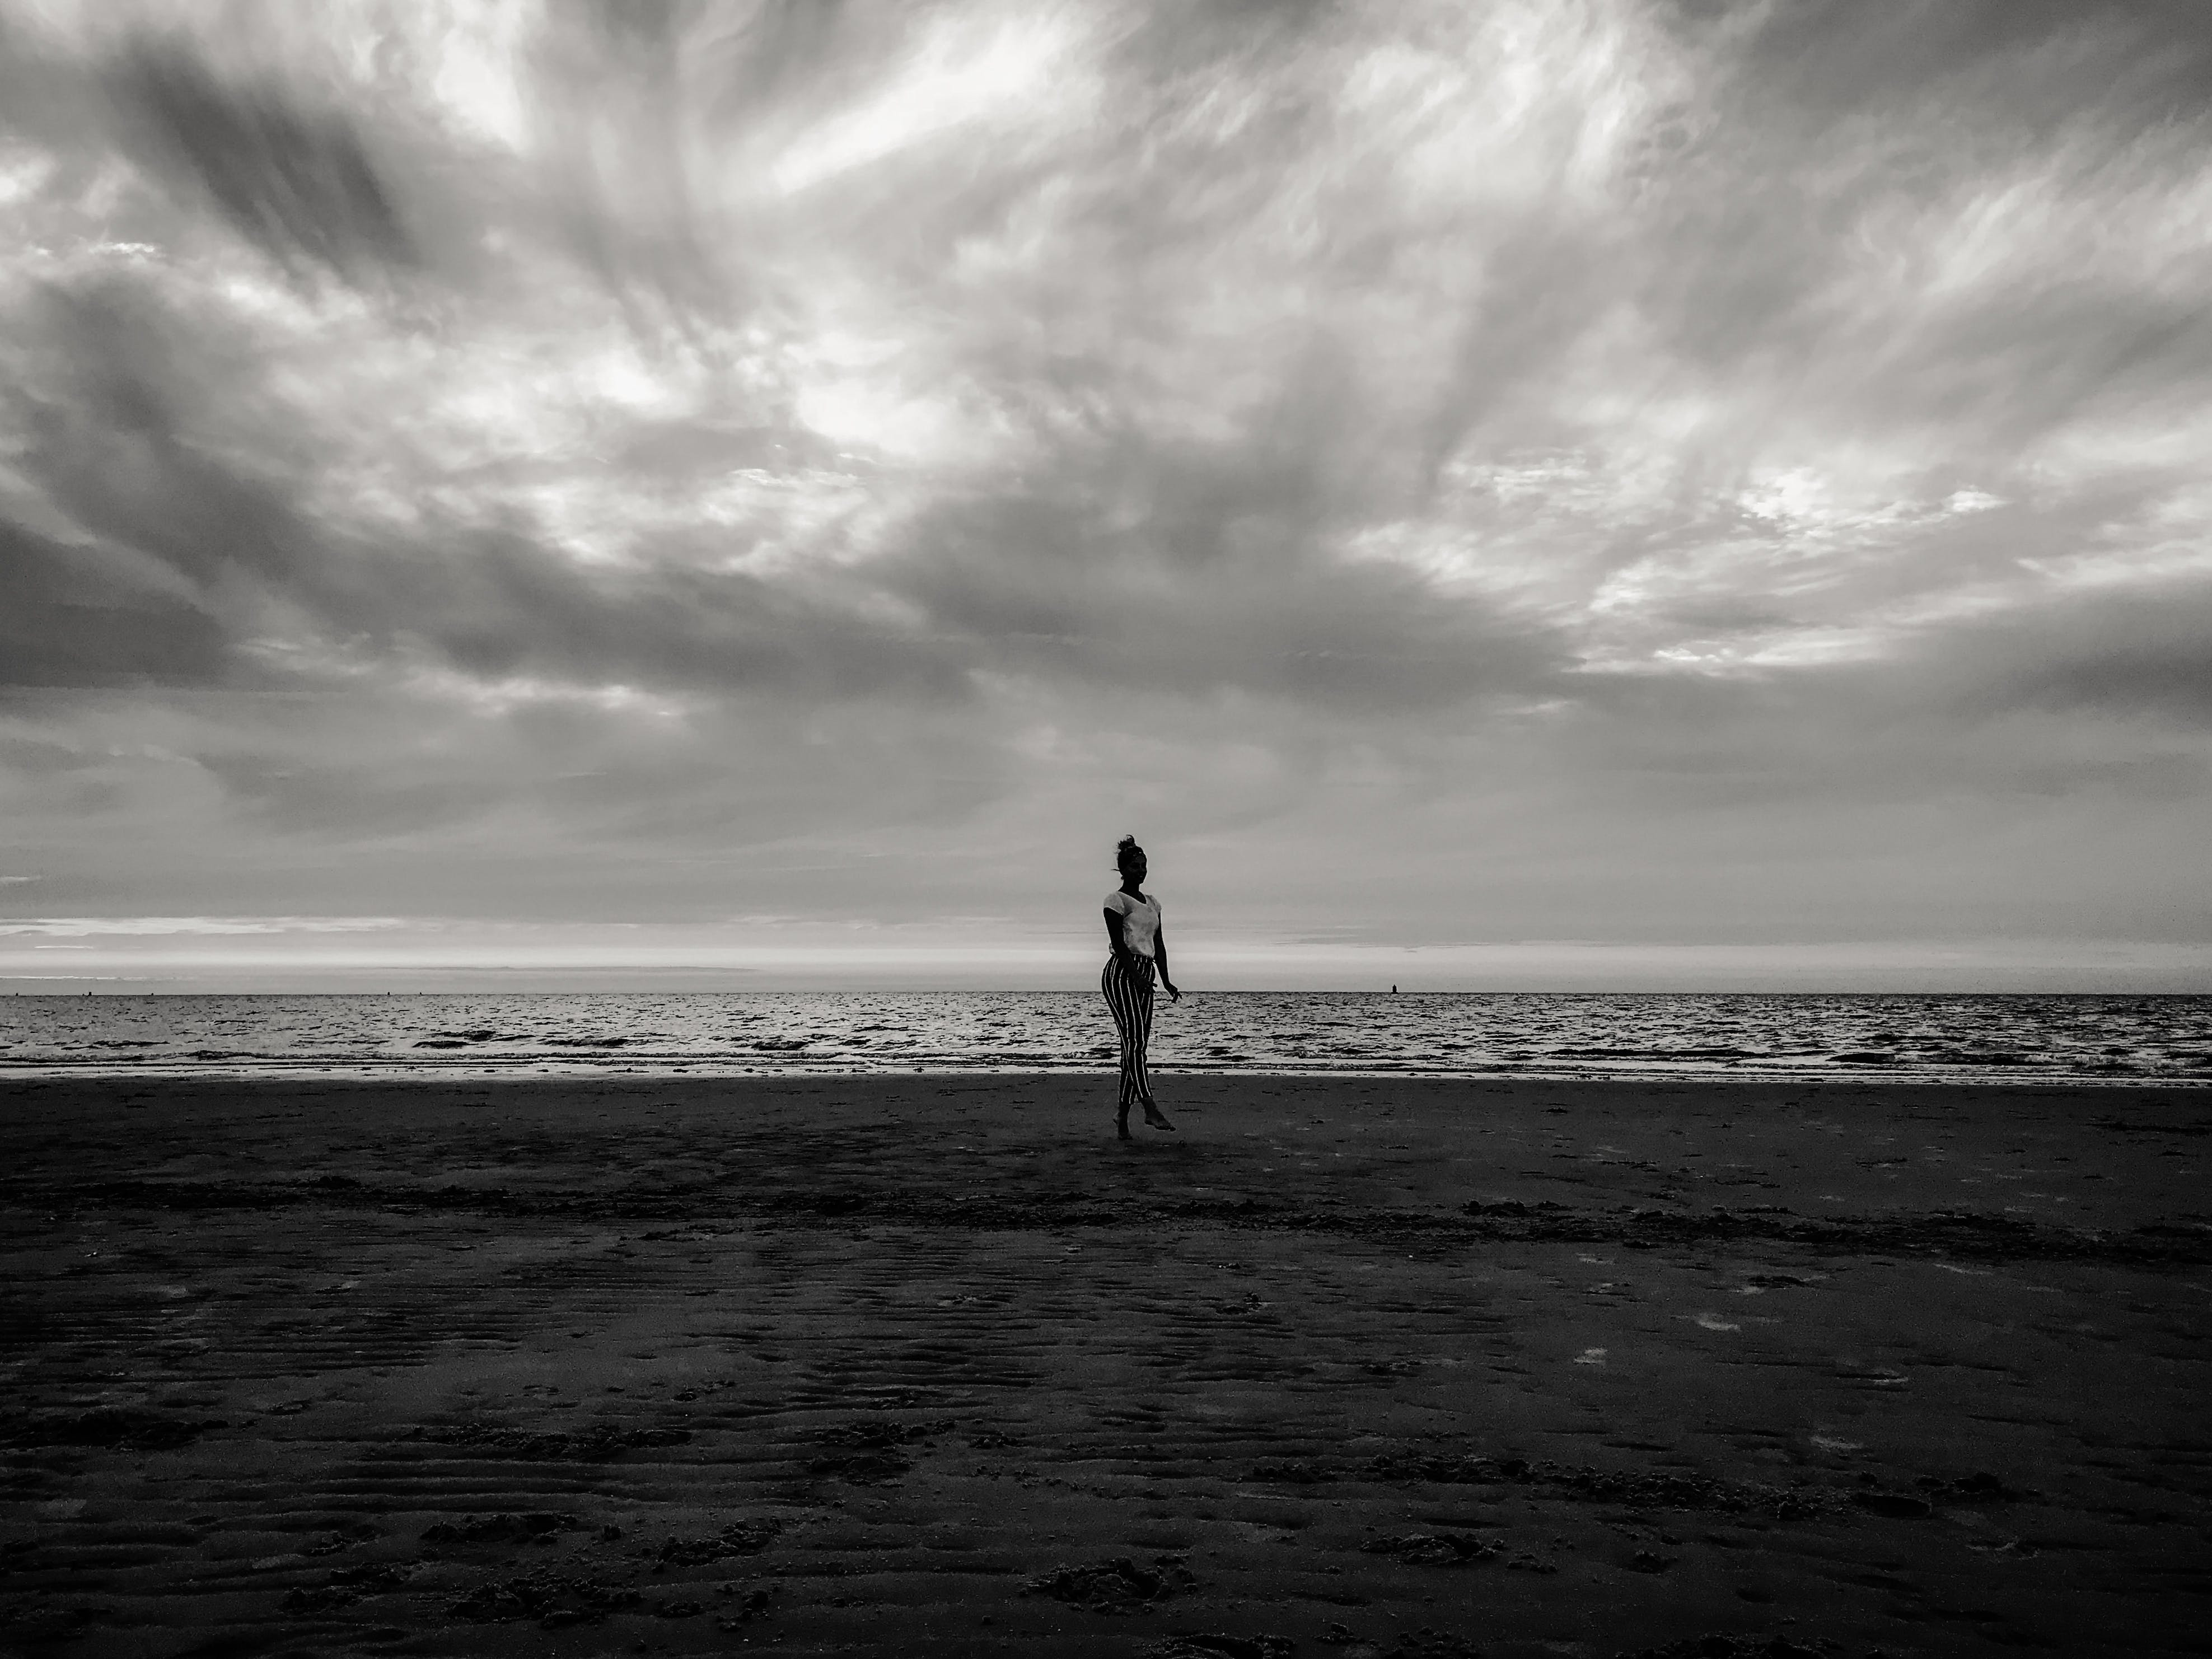 Person Standing on Seashore Under Cloudy Sky